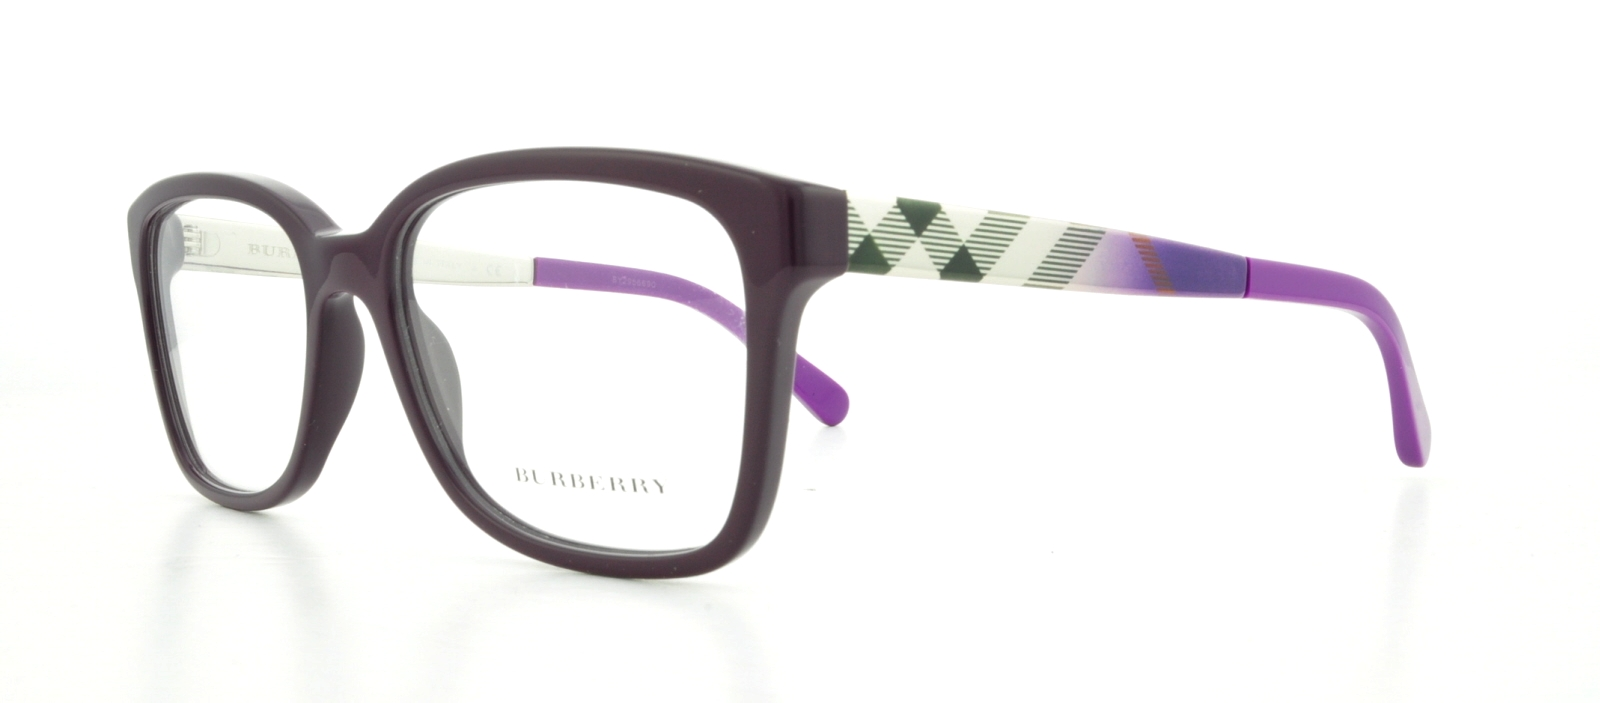 6935a2d79888 Designer Frames Outlet. Burberry BE2143